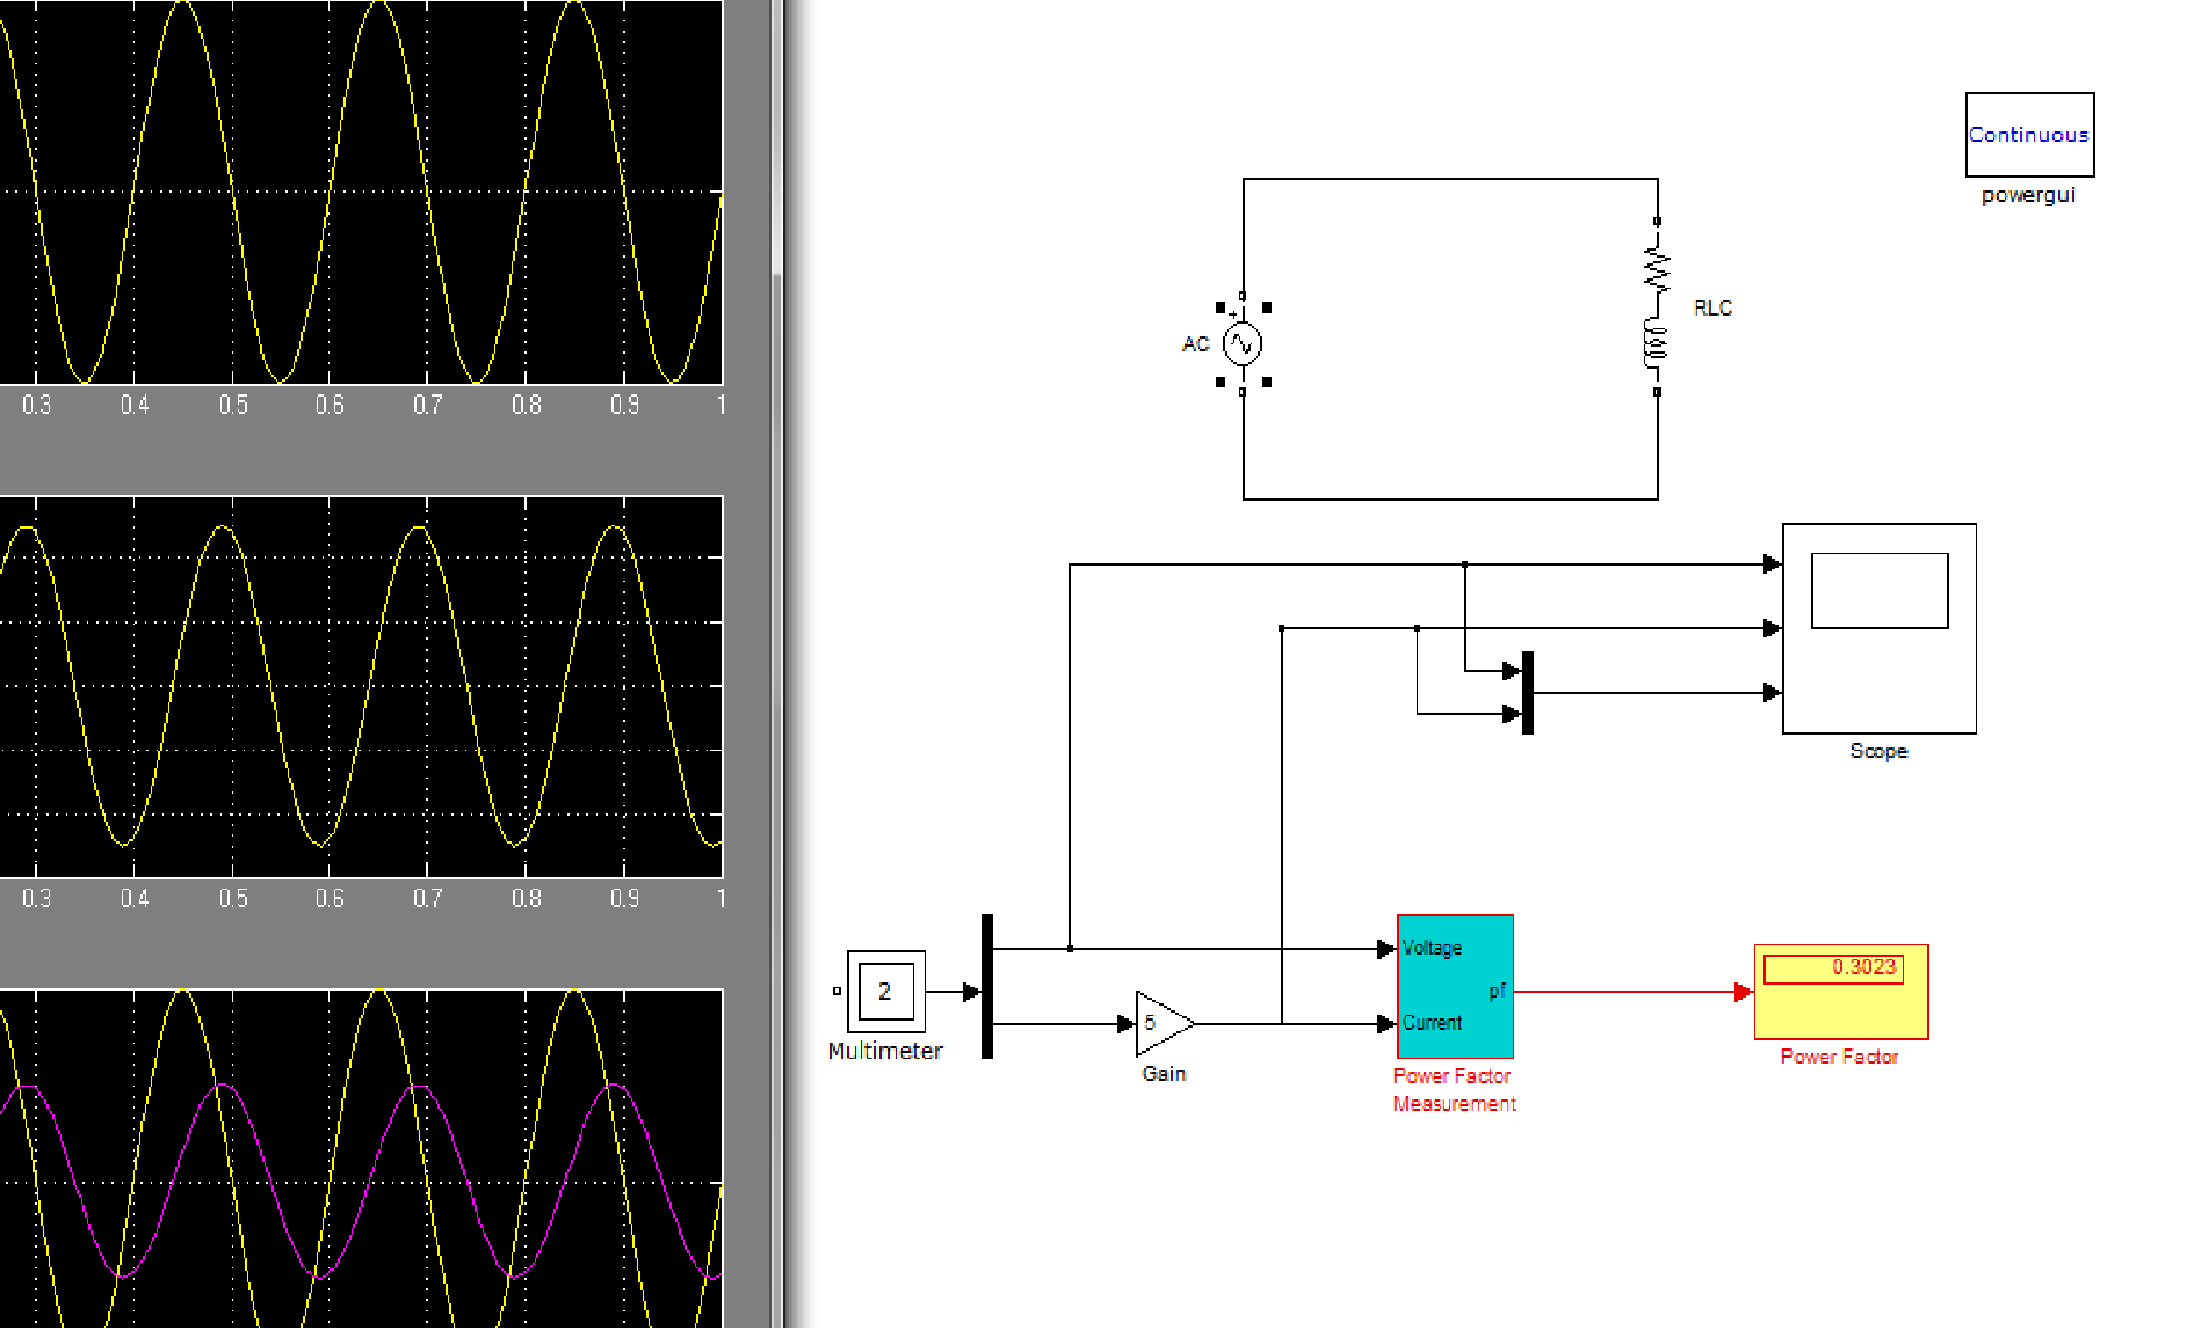 By Measuring Power Current And Voltage Power Factor Can Be Calculated